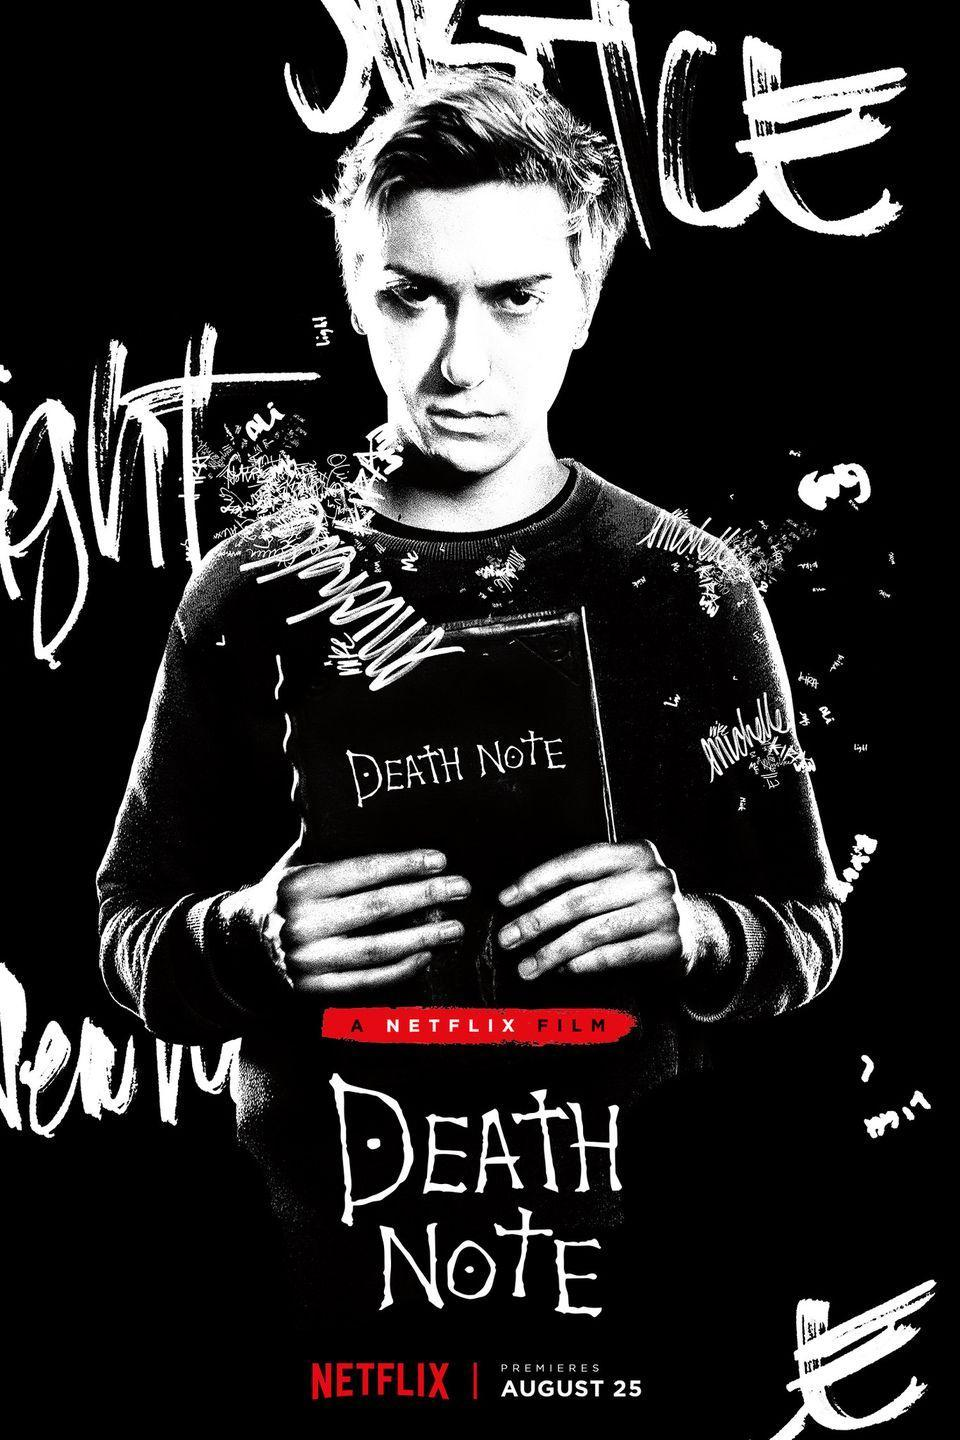 """<p>A boy finds himself with the """"Death Note,"""" a notebook that allows him to team up with death. He starts to use it for good, but finds it has many unfortunate repercussions.</p><p><a class=""""link rapid-noclick-resp"""" href=""""https://www.netflix.com/title/80122759"""" rel=""""nofollow noopener"""" target=""""_blank"""" data-ylk=""""slk:STREAM NOW"""">STREAM NOW</a></p>"""